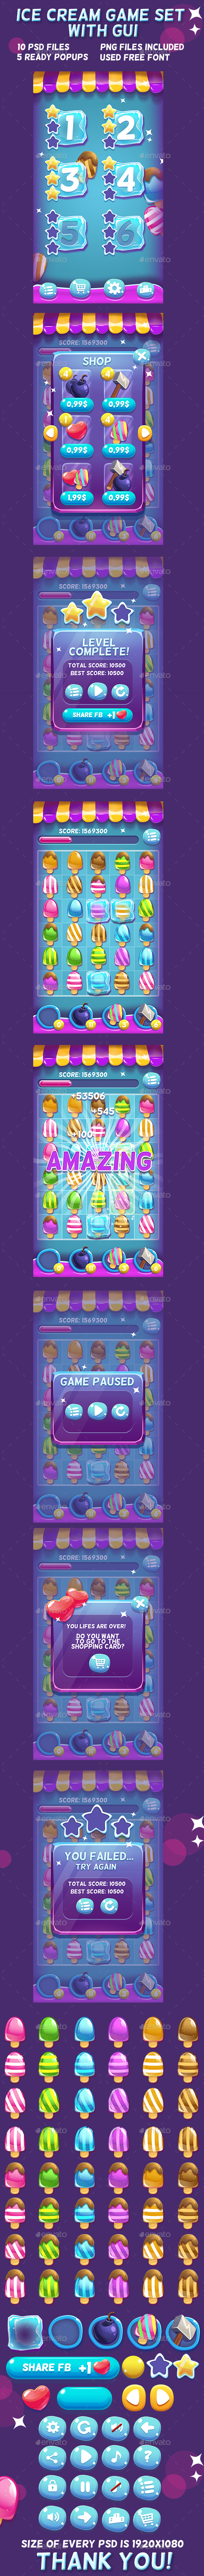 Ice Cream Game Set with UI (Game Kits)